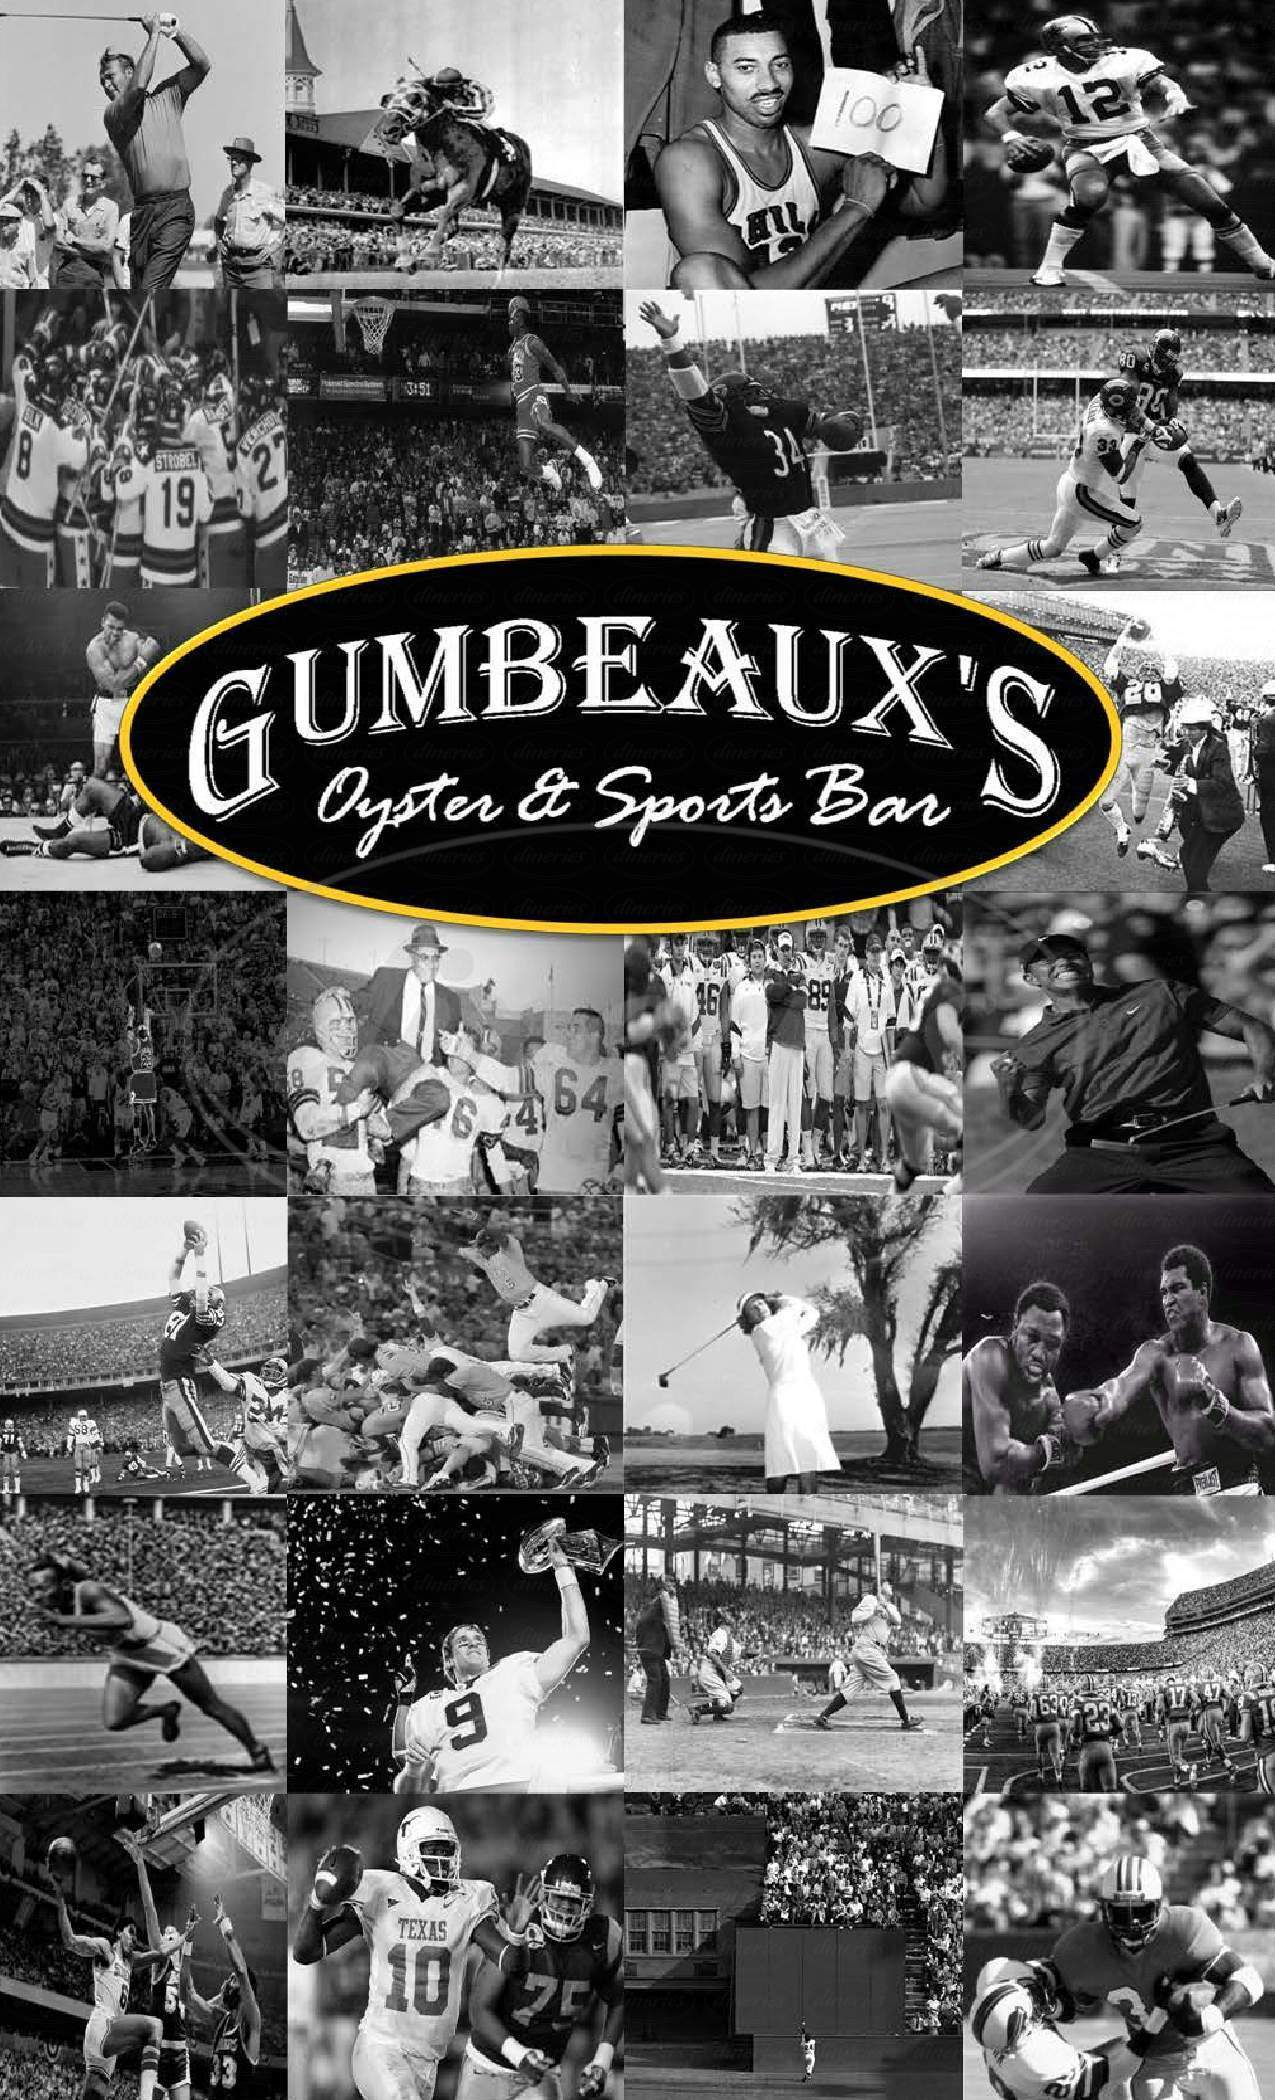 Big menu for Gumbeaux's Oyster And Sports Bar, Kinder